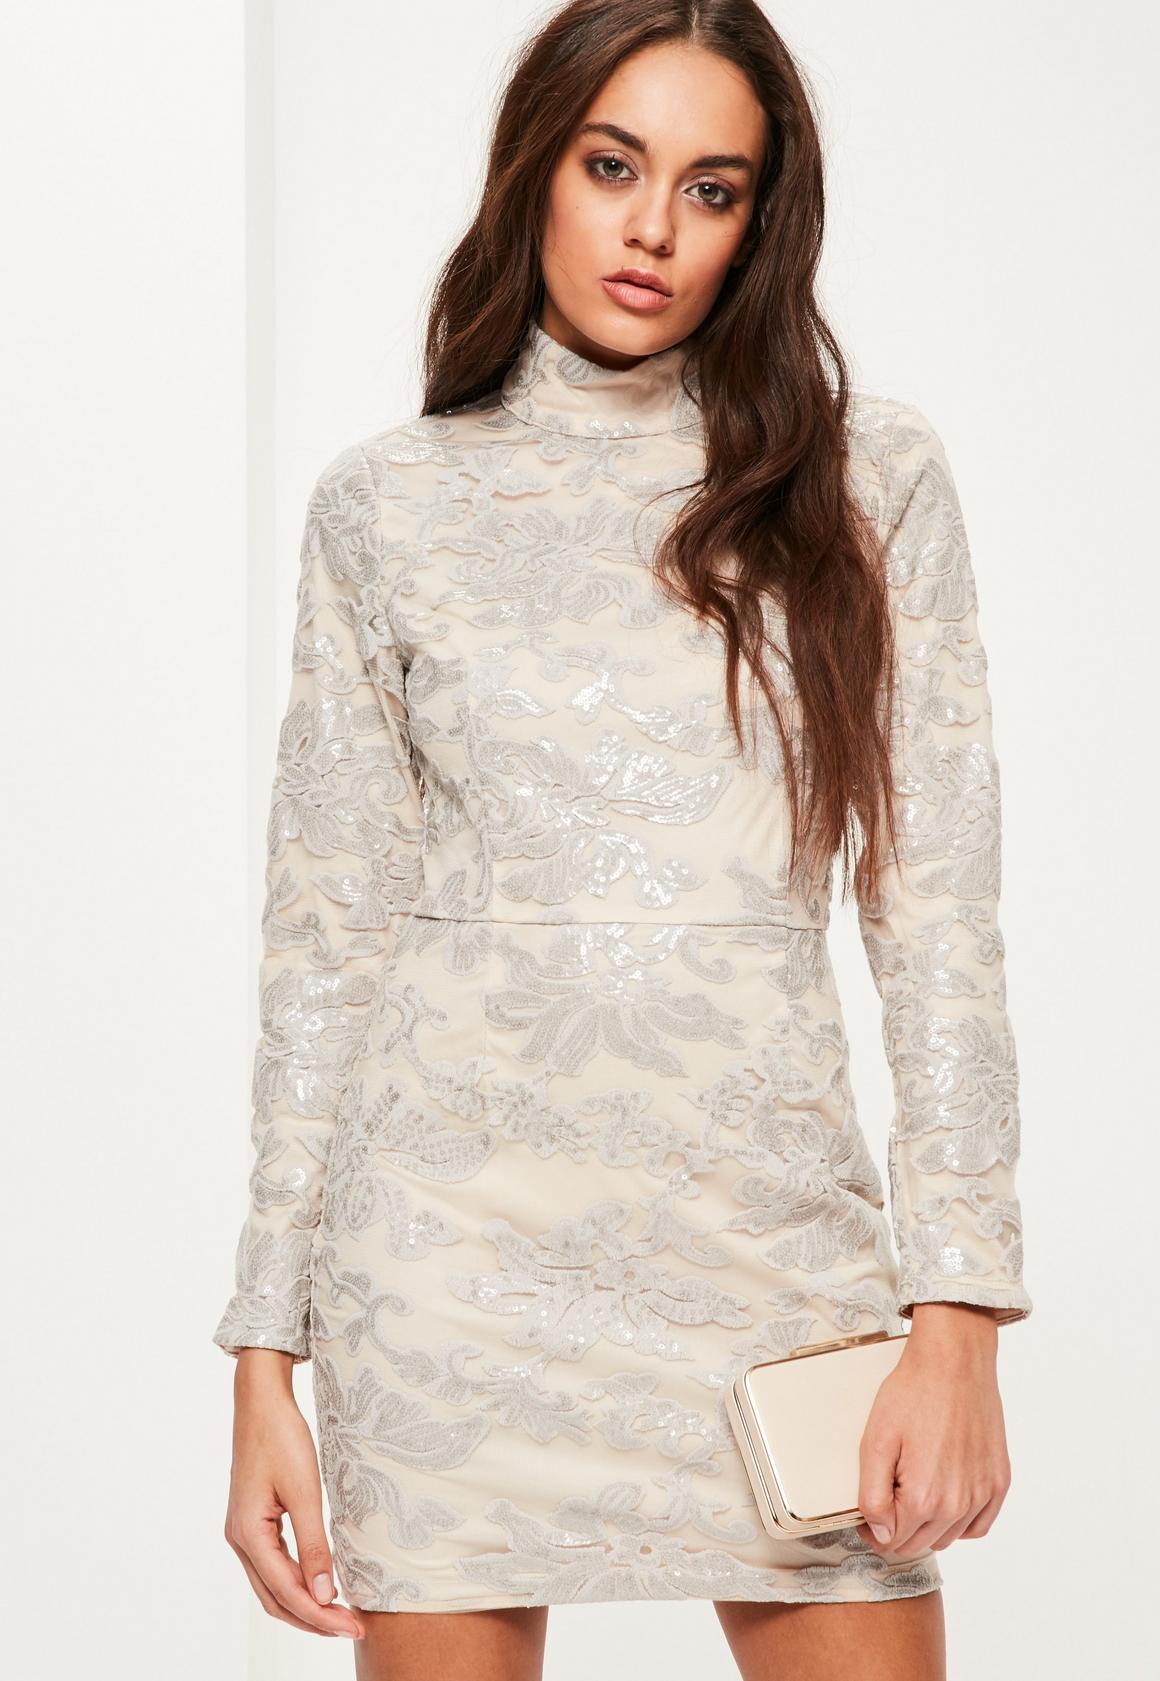 Sequin Dresses | Sparkly & Embellished Dresses - Missguided